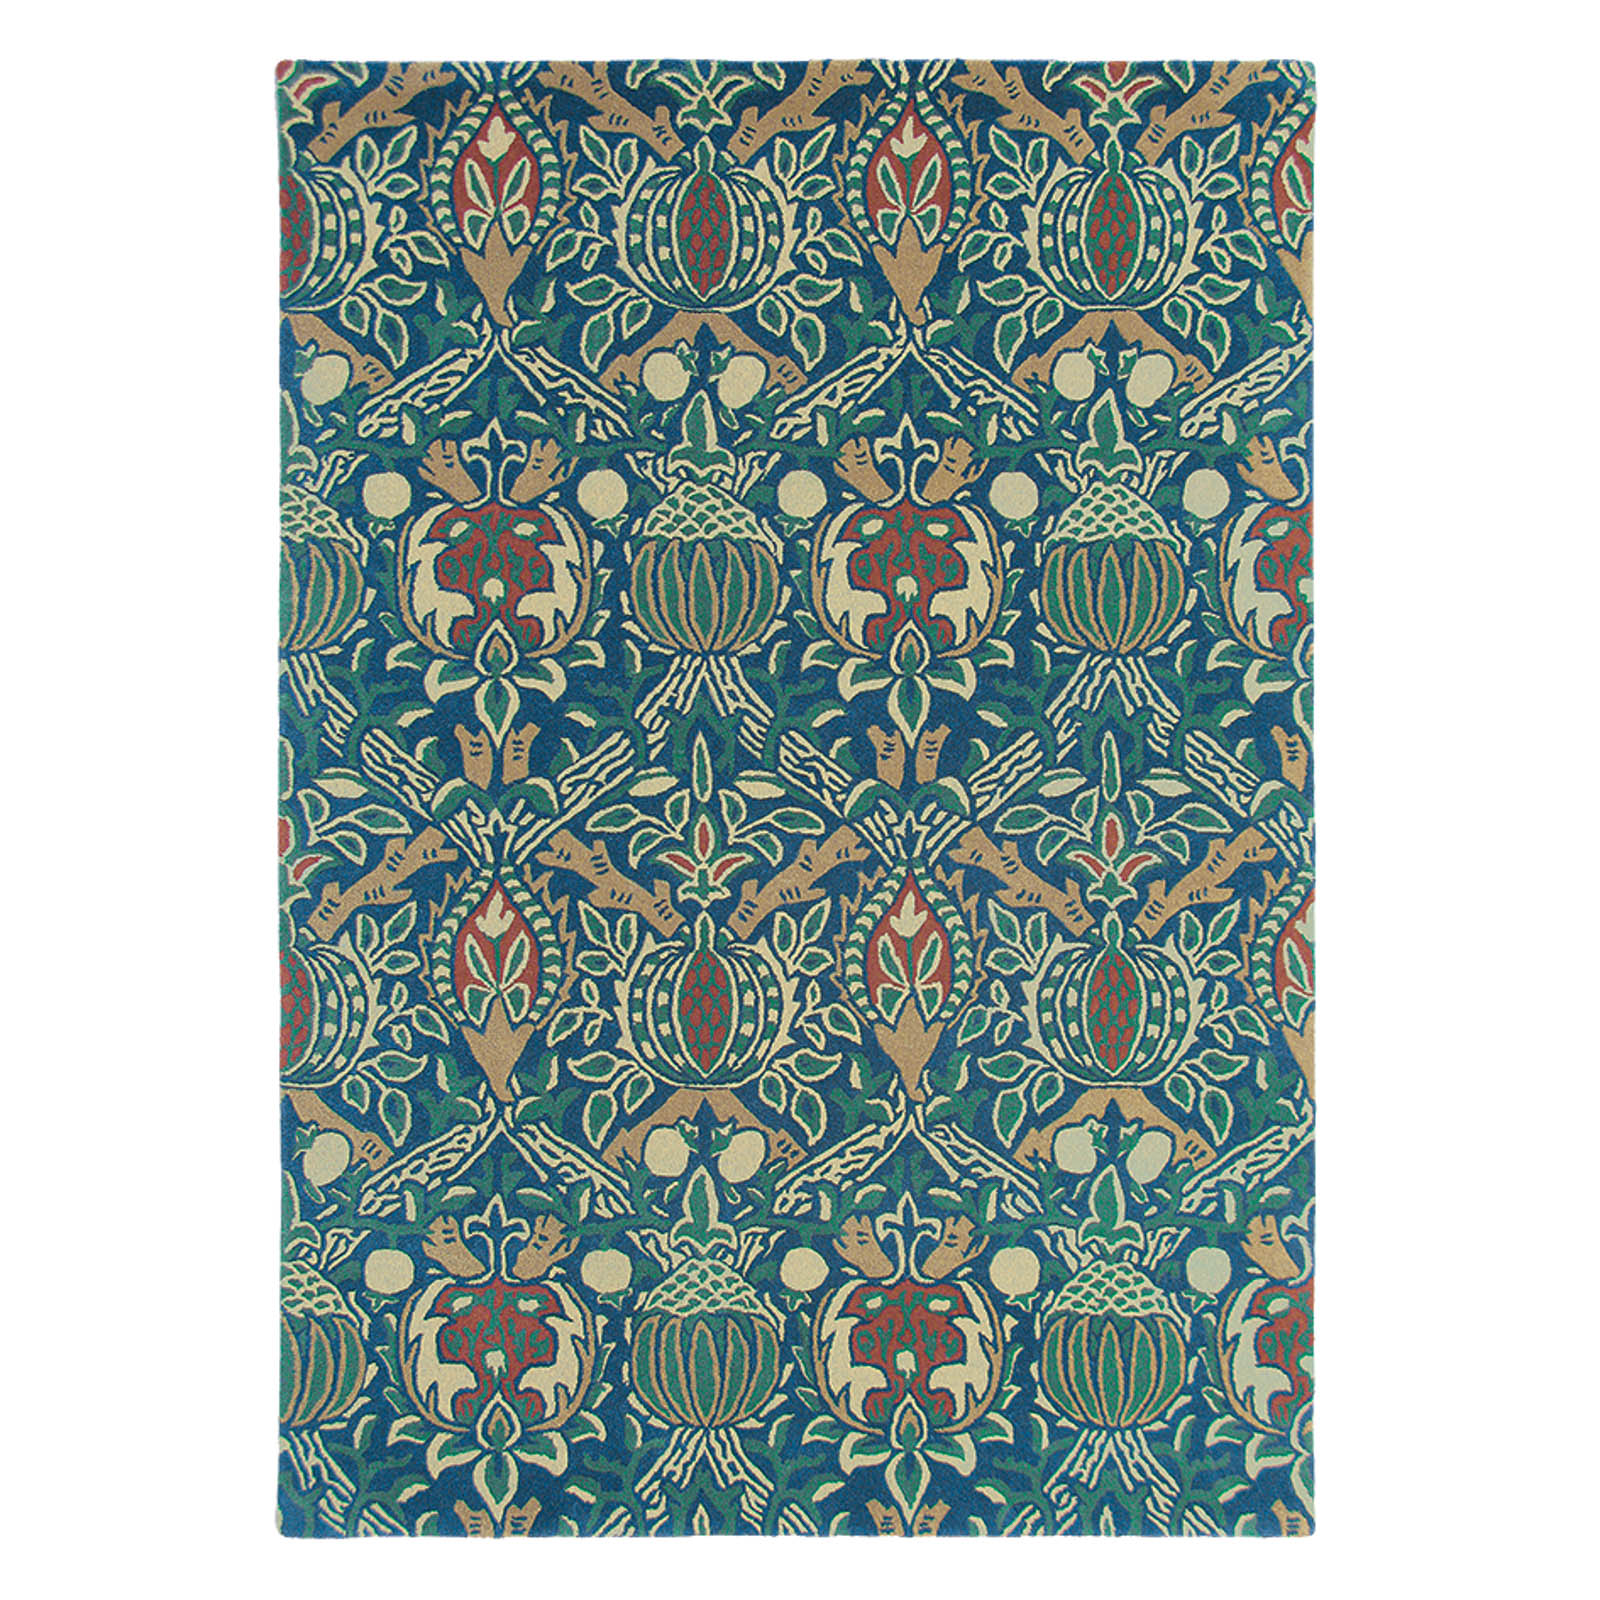 Granada Rugs 27608 in Indigo and Red by William Morris